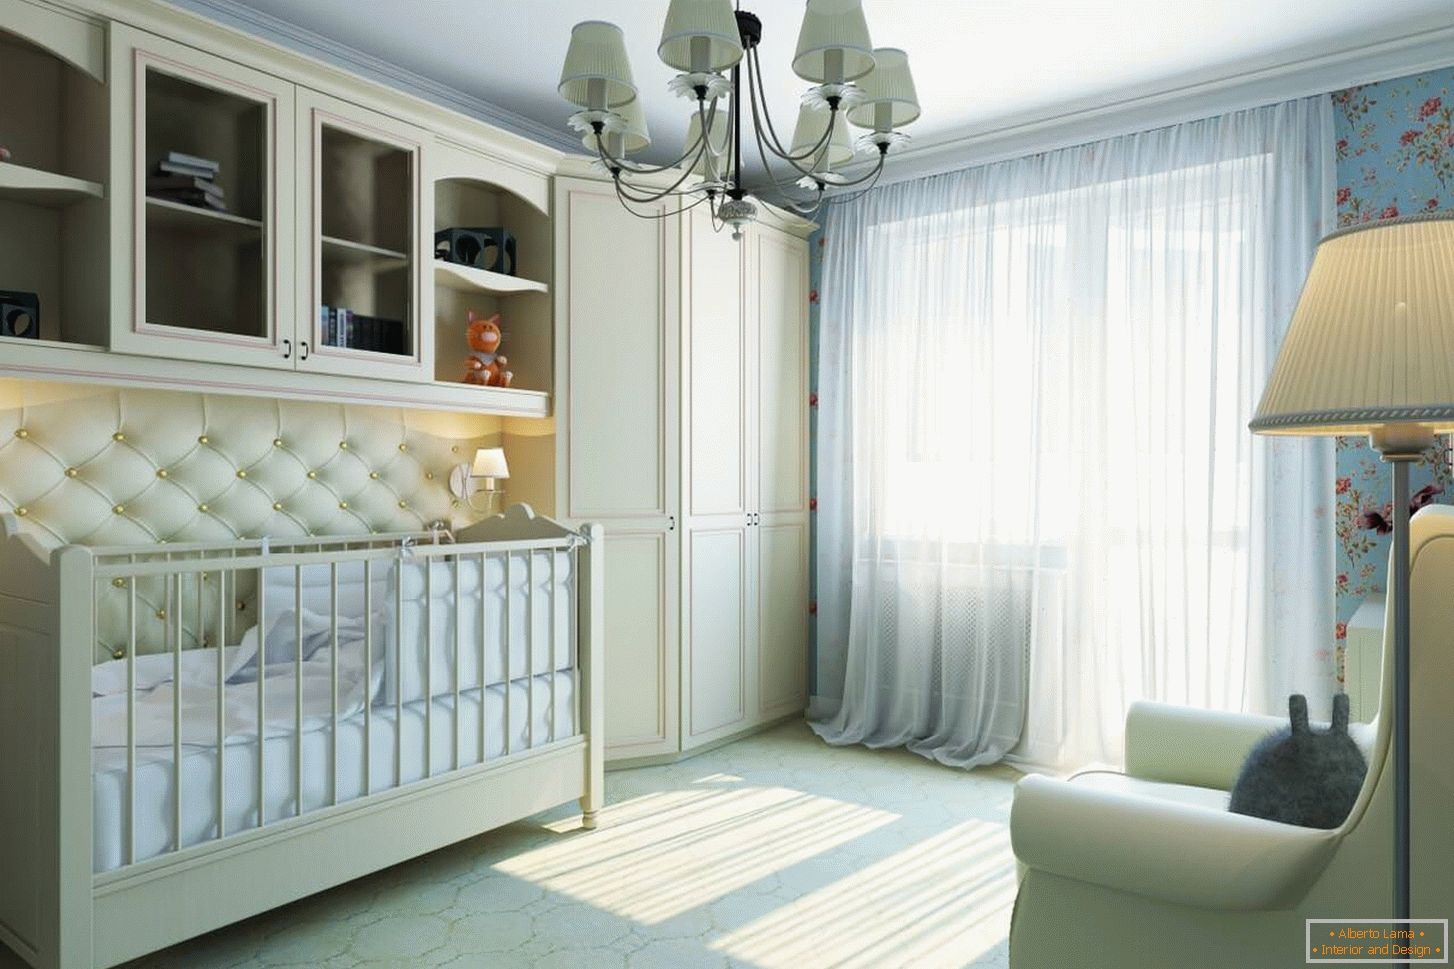 Room for the newborn 12 кв м